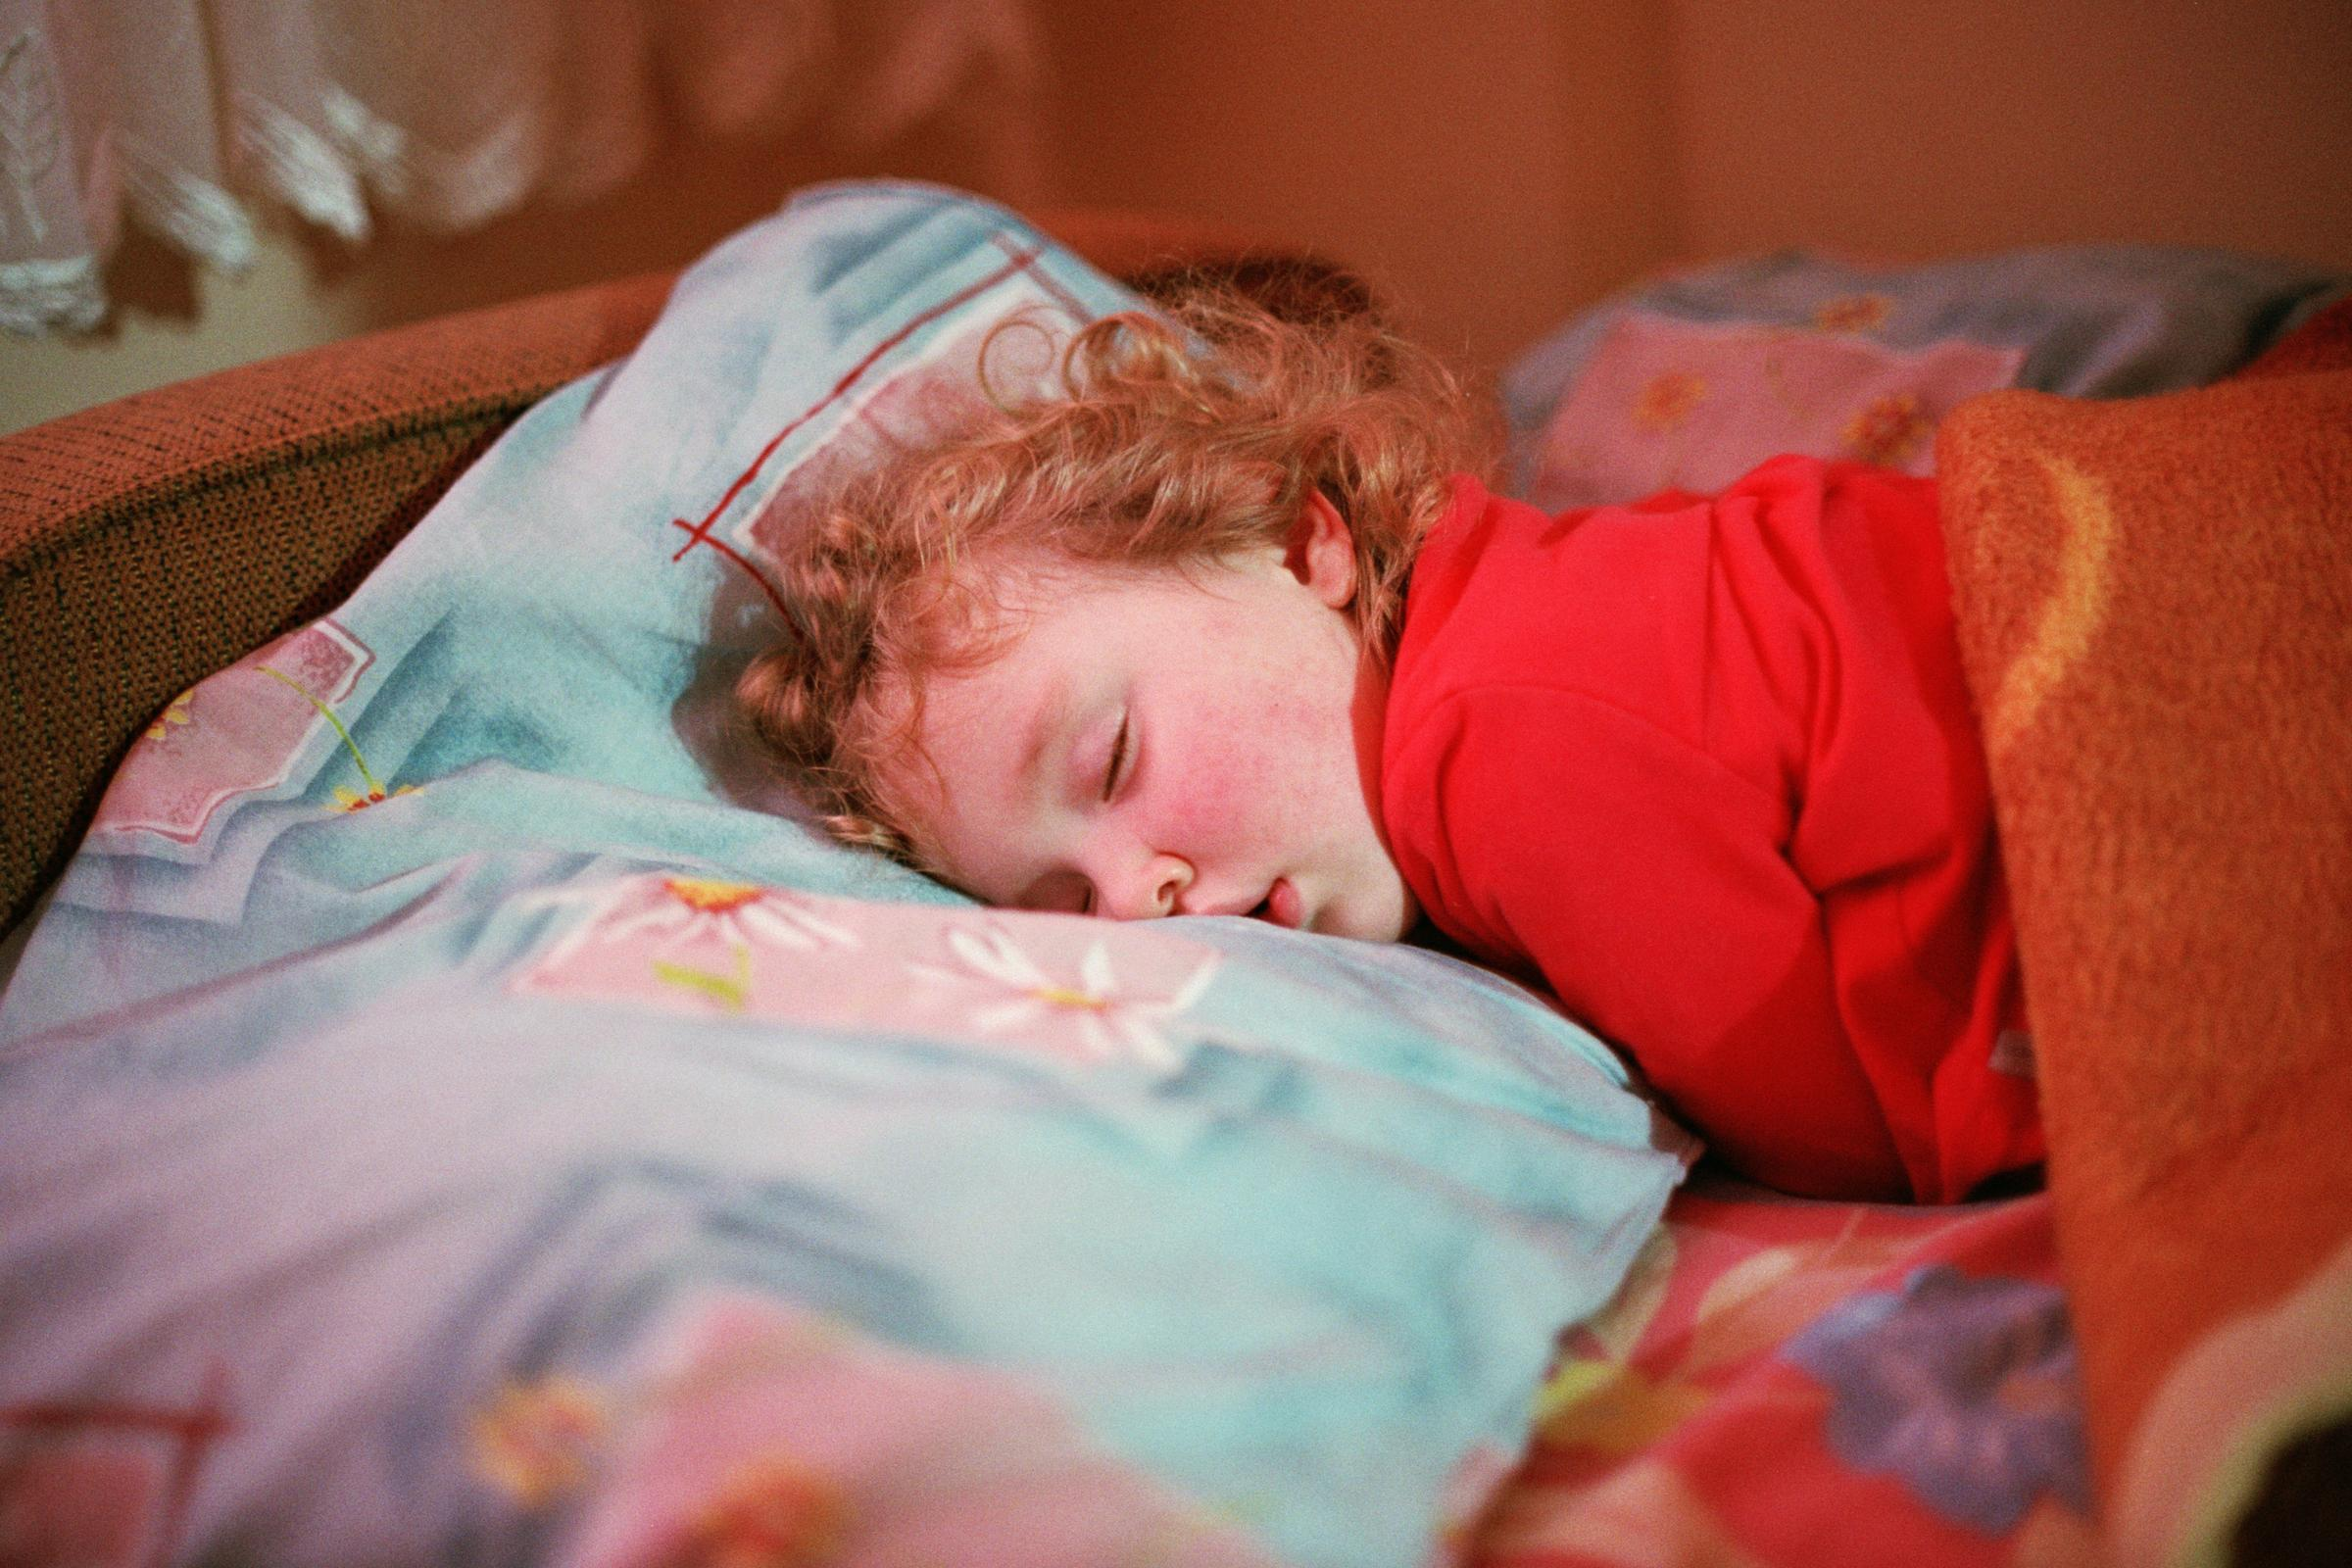 Why does not the child sleep